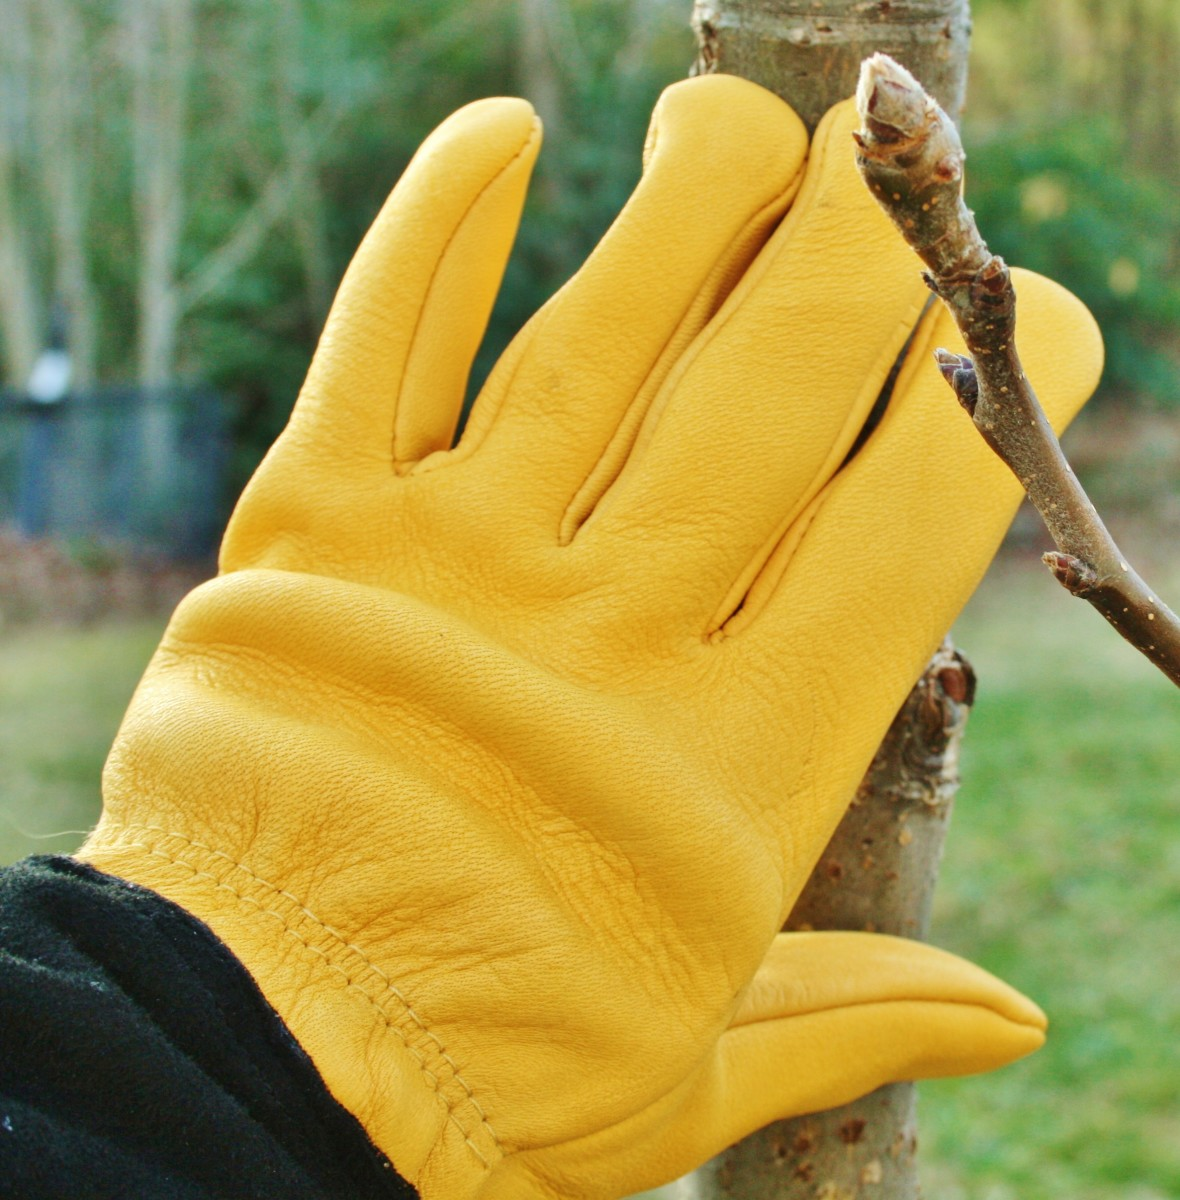 Gold Leaf gloves are the best gardening gloves I've ever used.